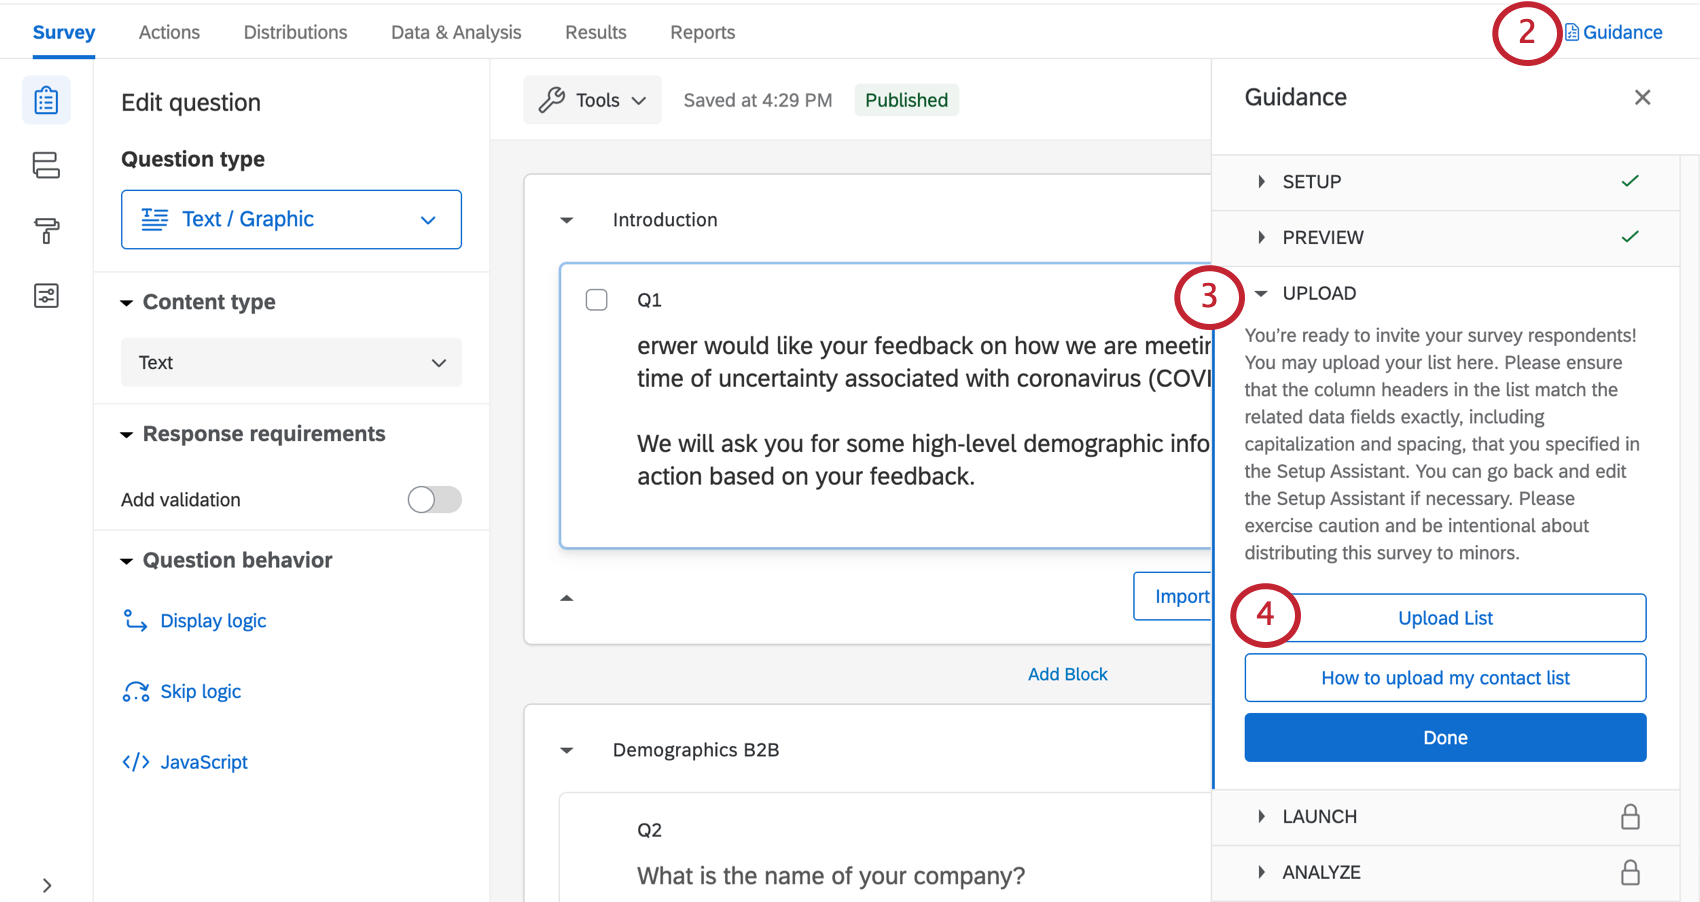 clicking upload list in the upload section of the project guidance